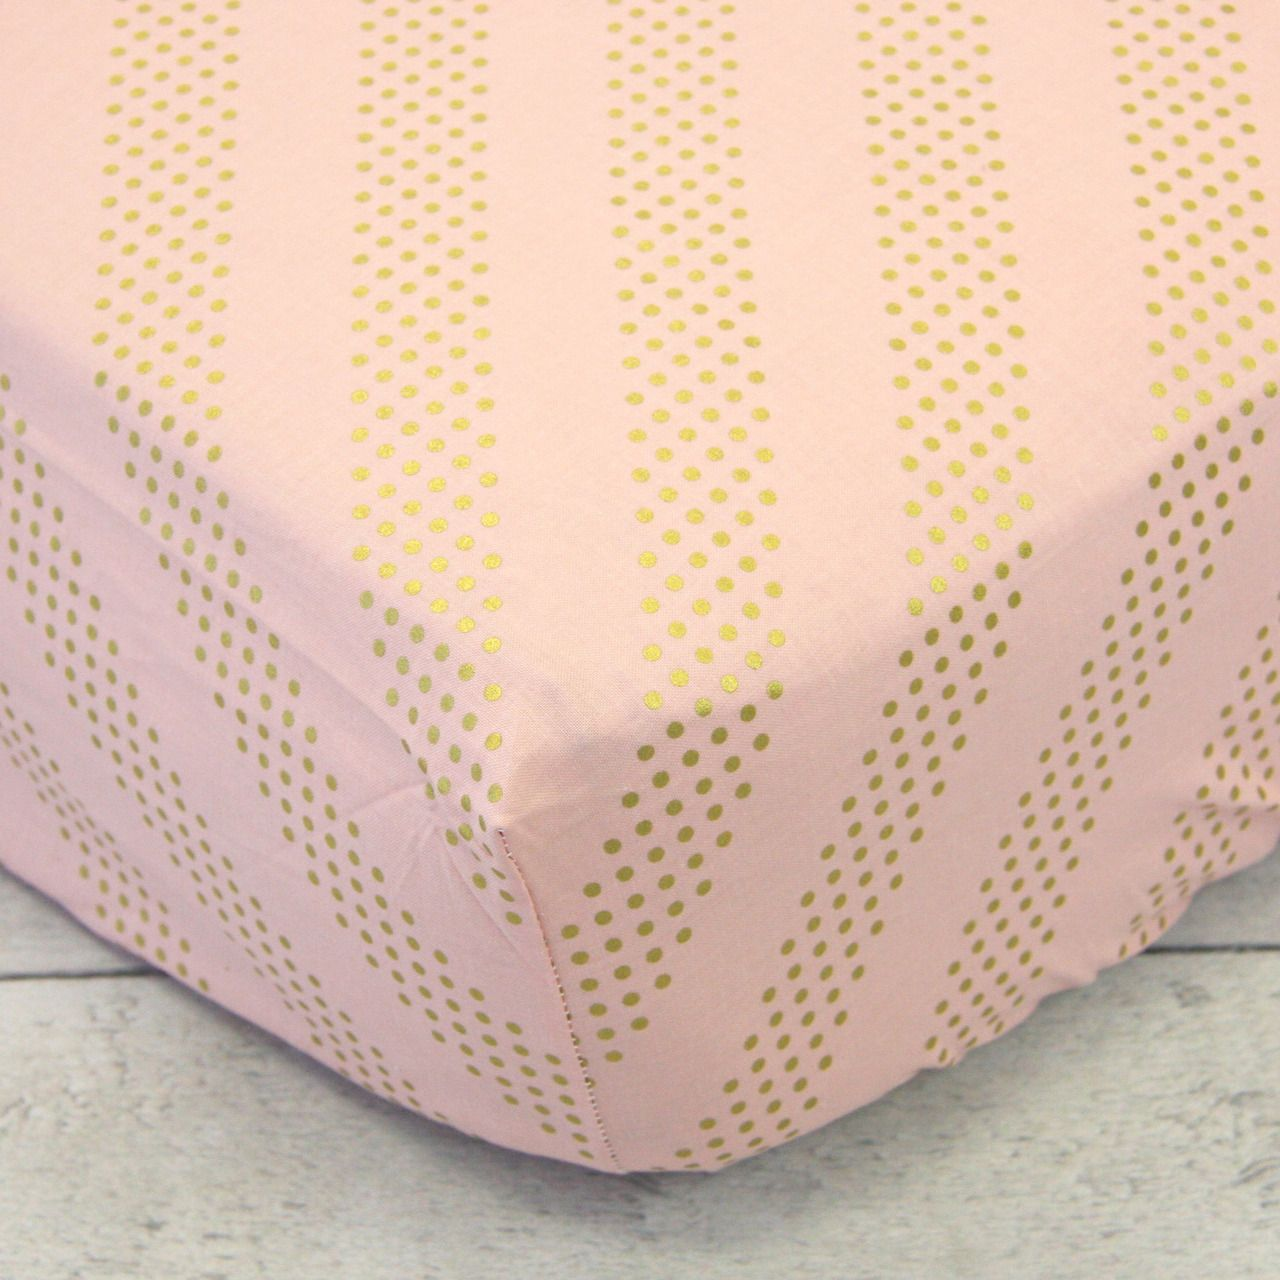 Marion S Coral And Gold Polka Dot Nursery: This Is A Gorgeous Blush Color Fitted Crib Sheet With